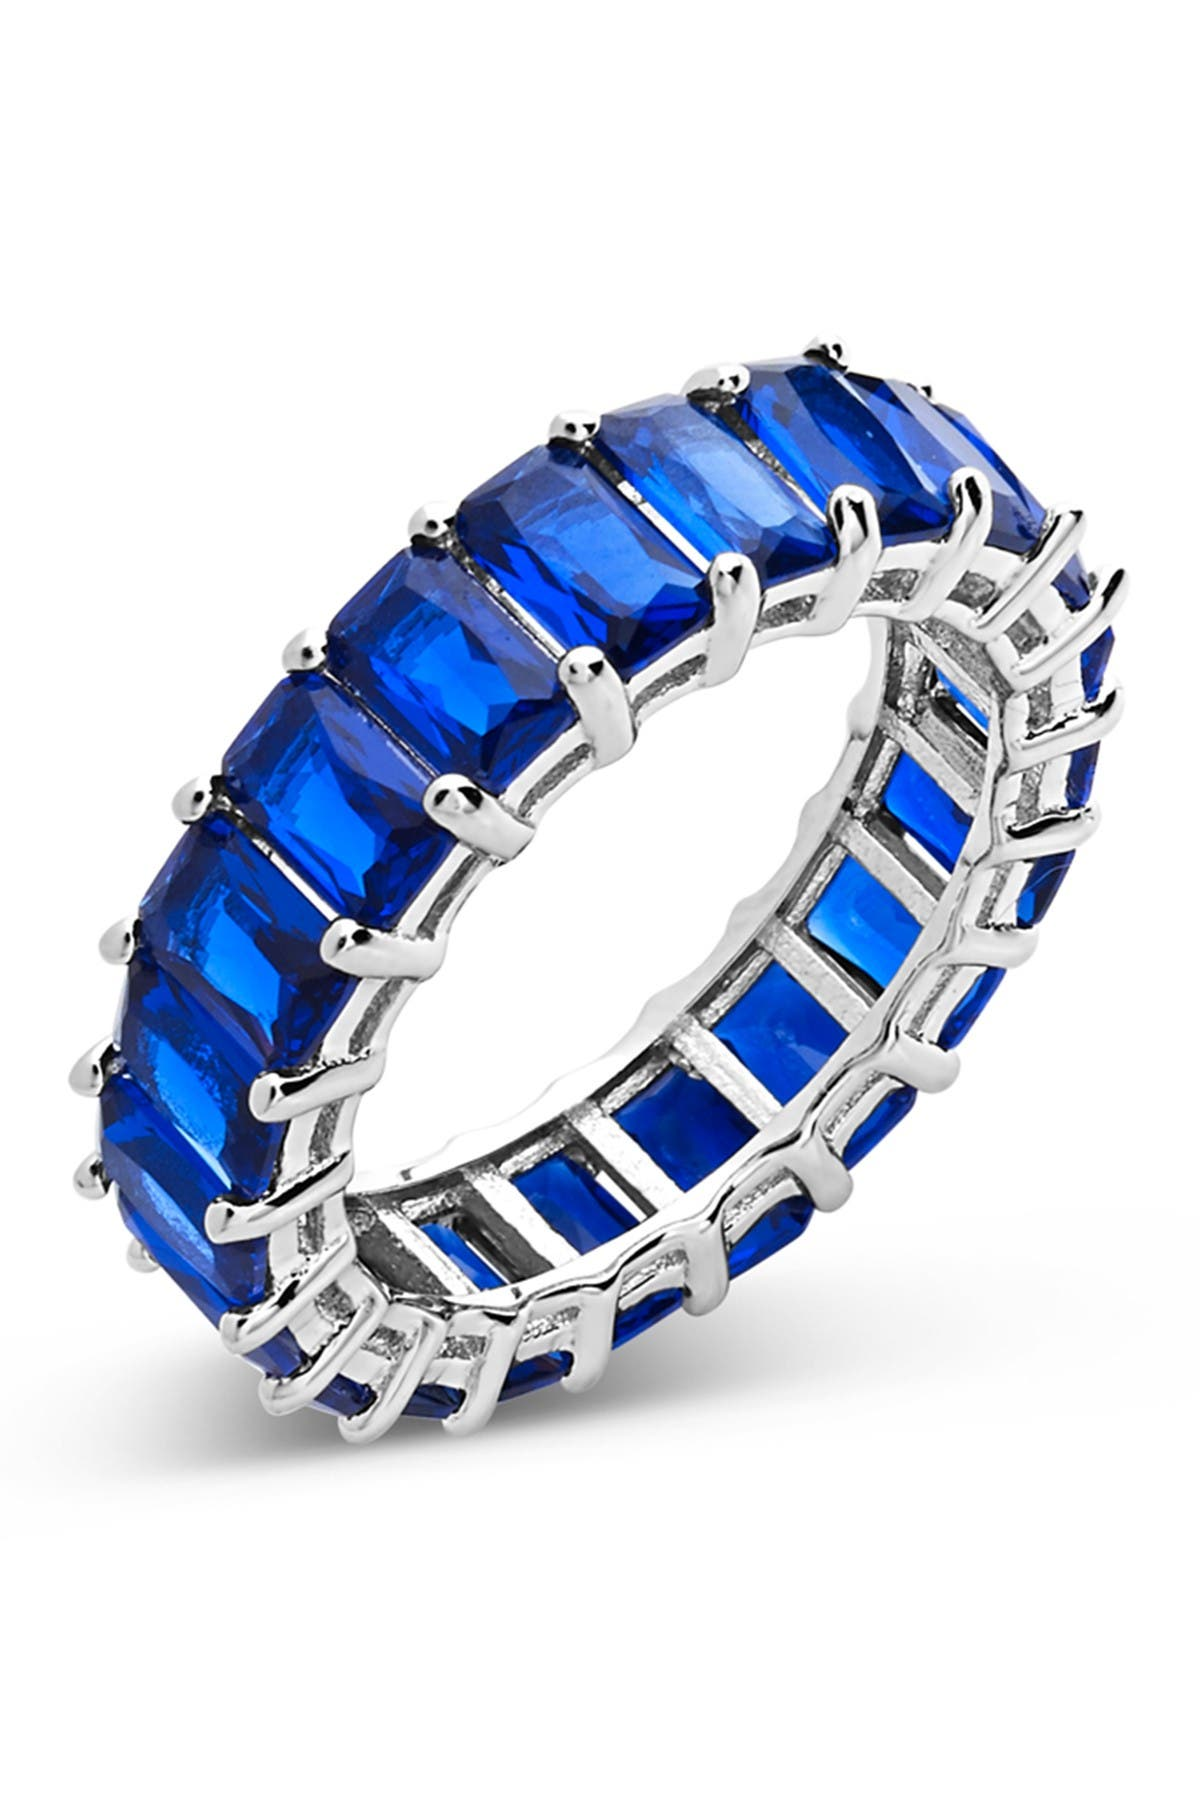 Image of Sterling Forever Sterling Silver Emerald Cut CZ Eternity Band - Sapphire